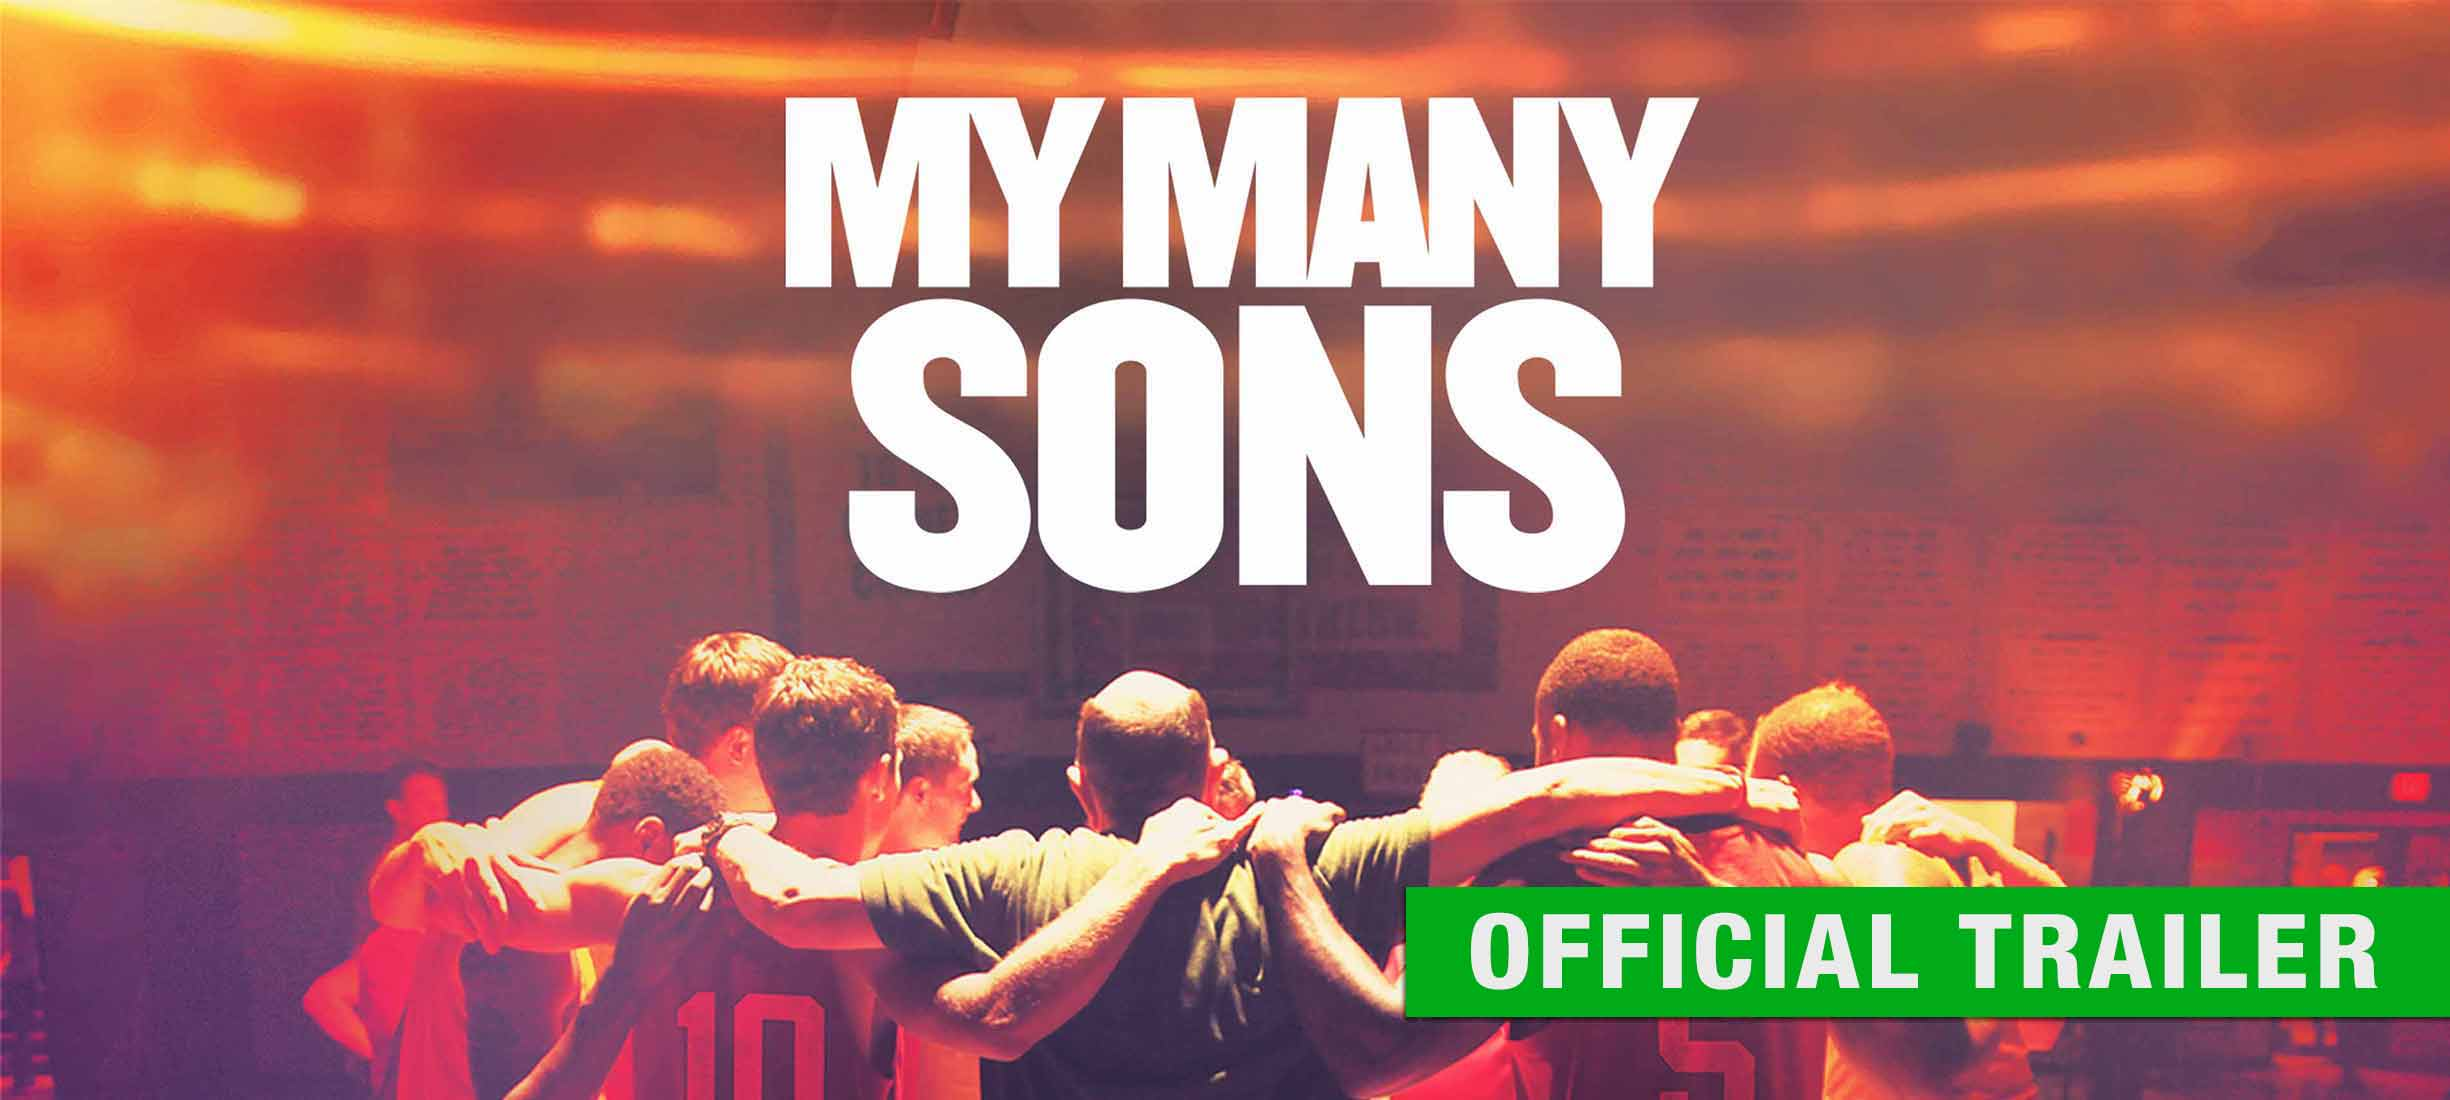 My Many Sons: Trailer